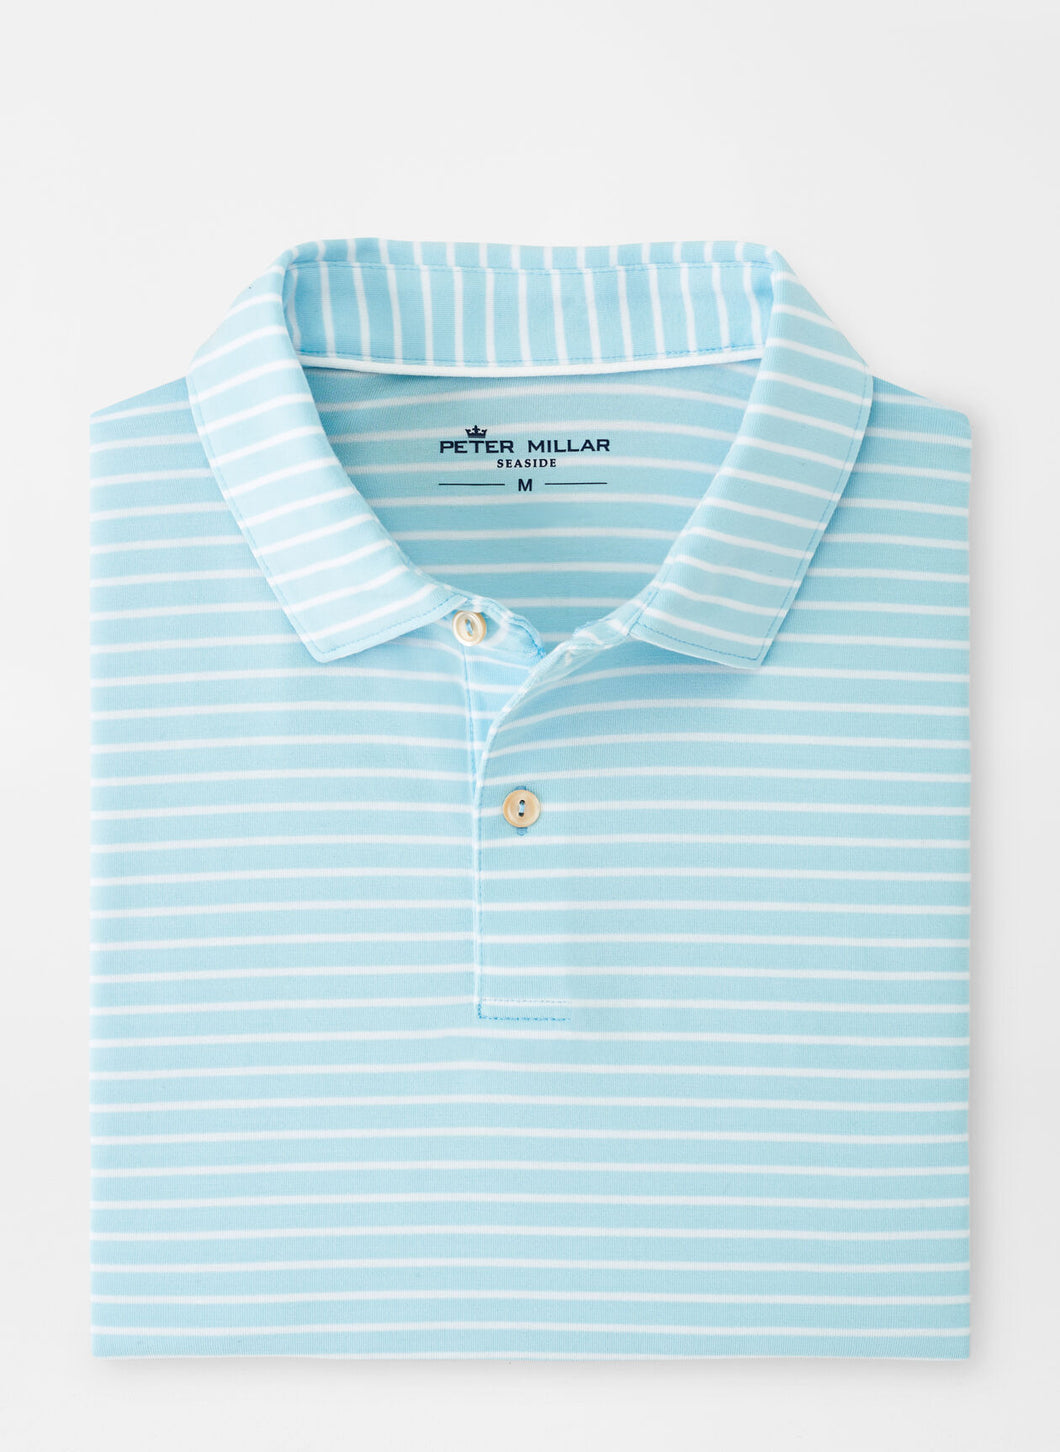 Peter Millar Seaside drirelease® Natural Touch Stripe Polo in Bayside Blue